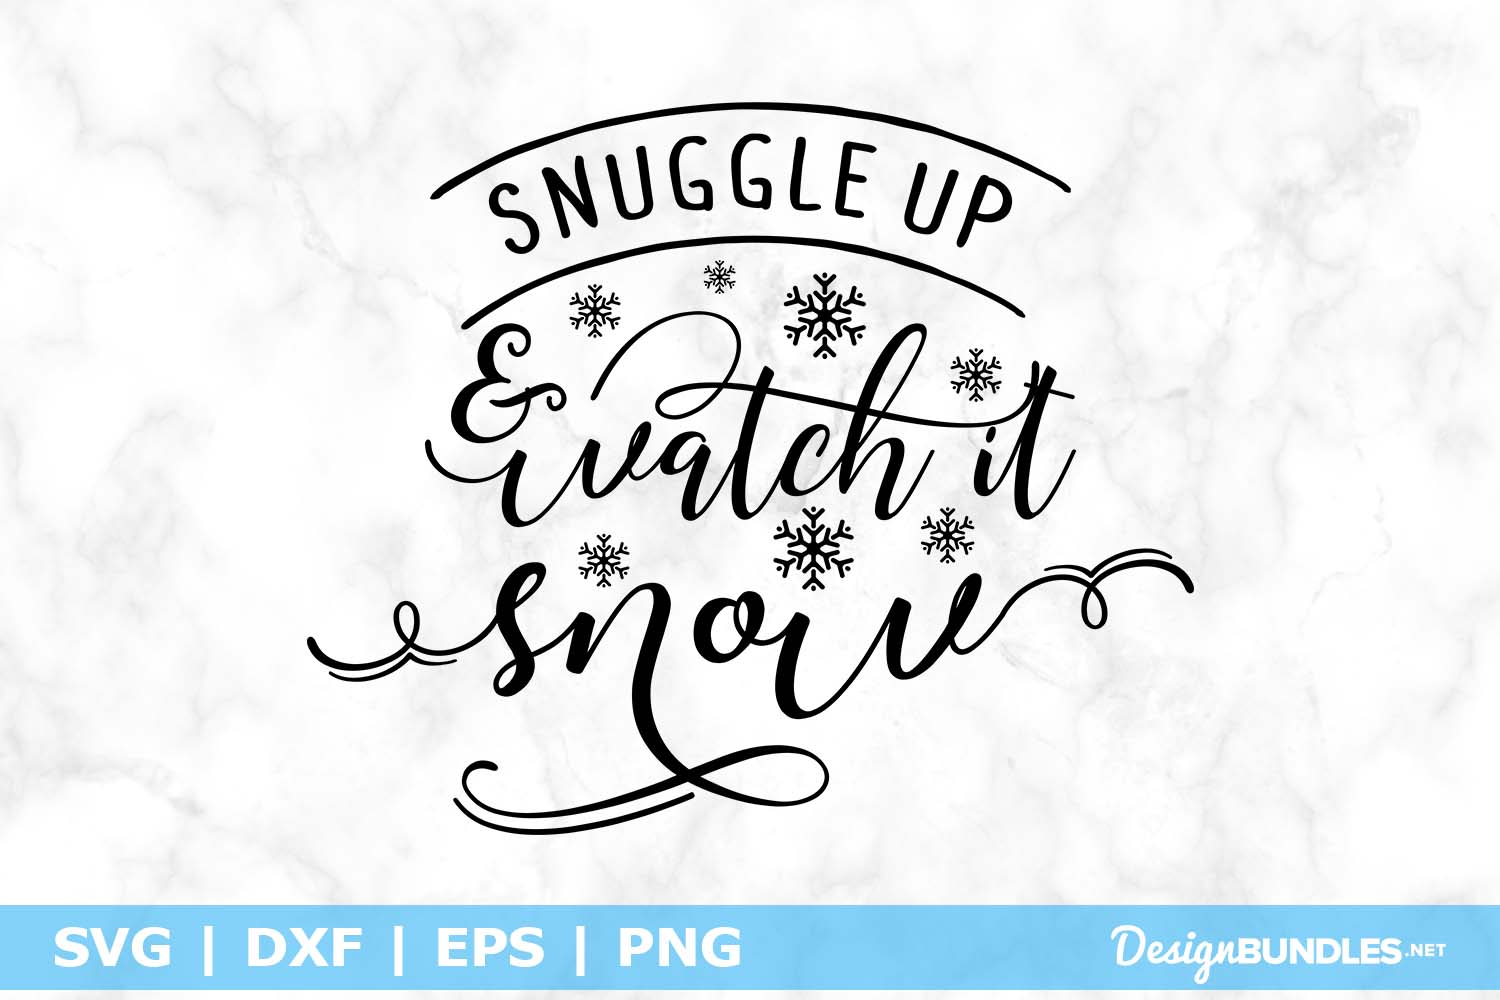 Snuggle Up & Watch It Snow SVG File example image 1